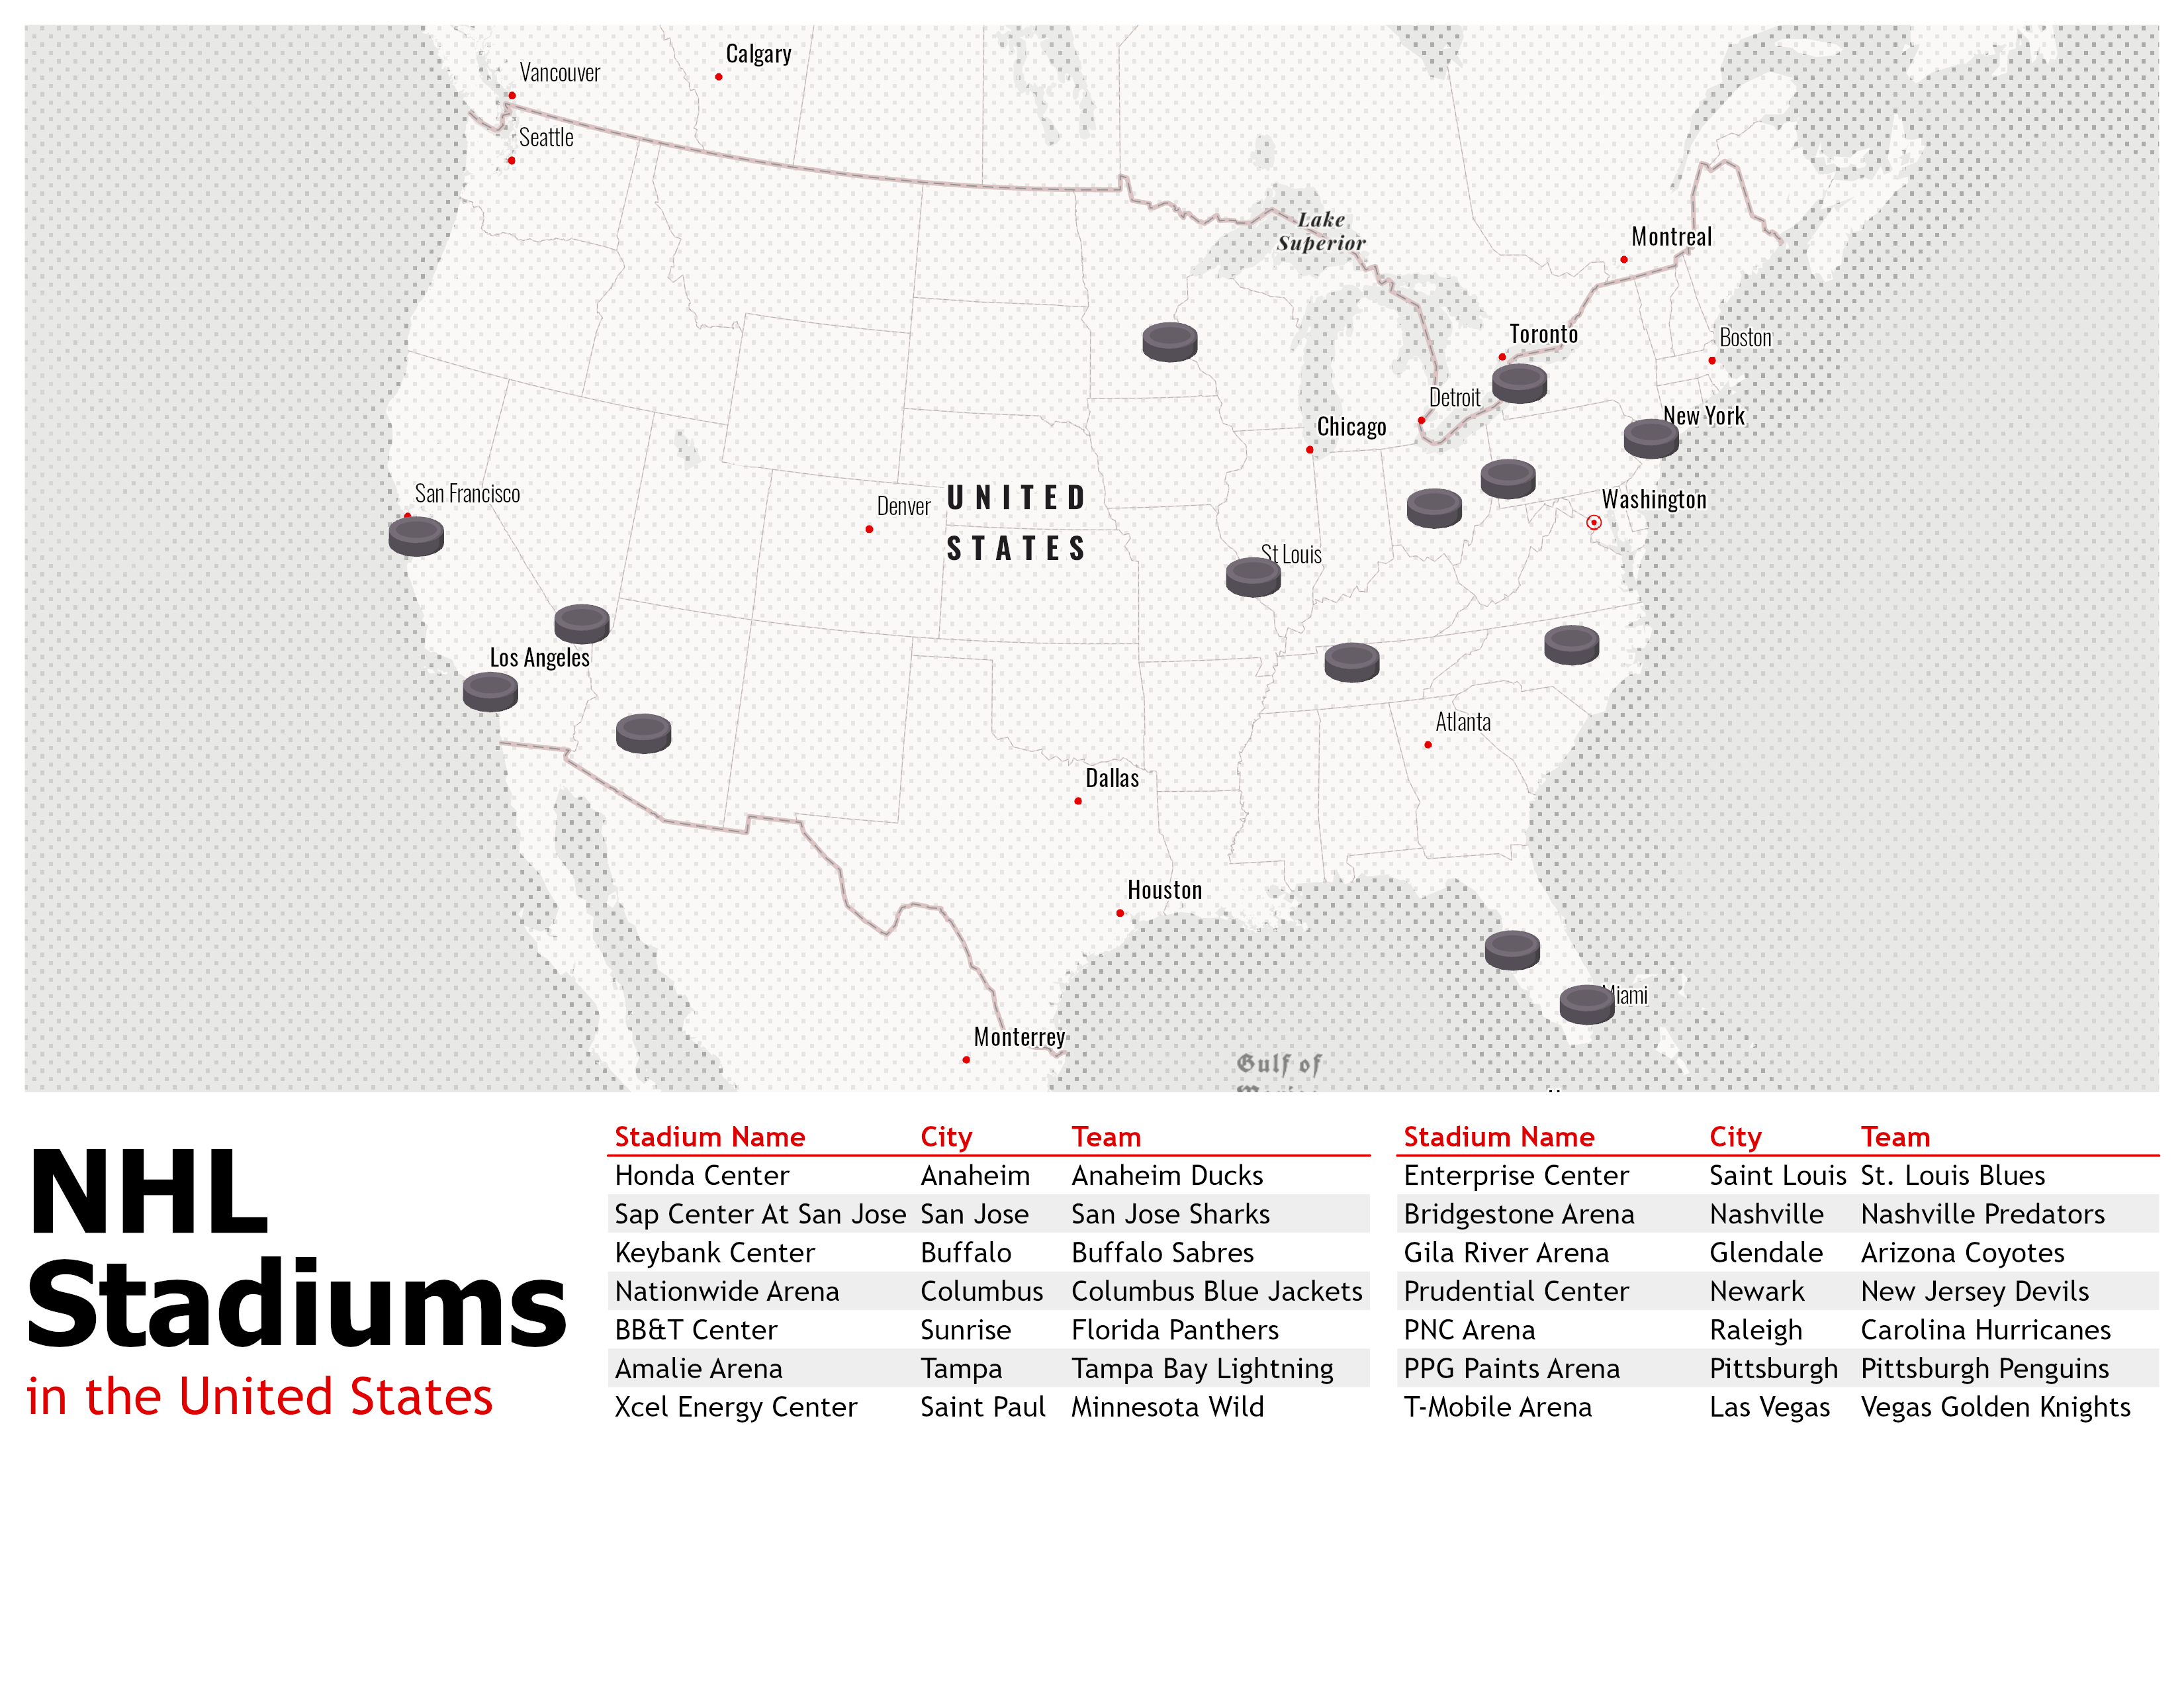 Map series page showing NHL stadiums.